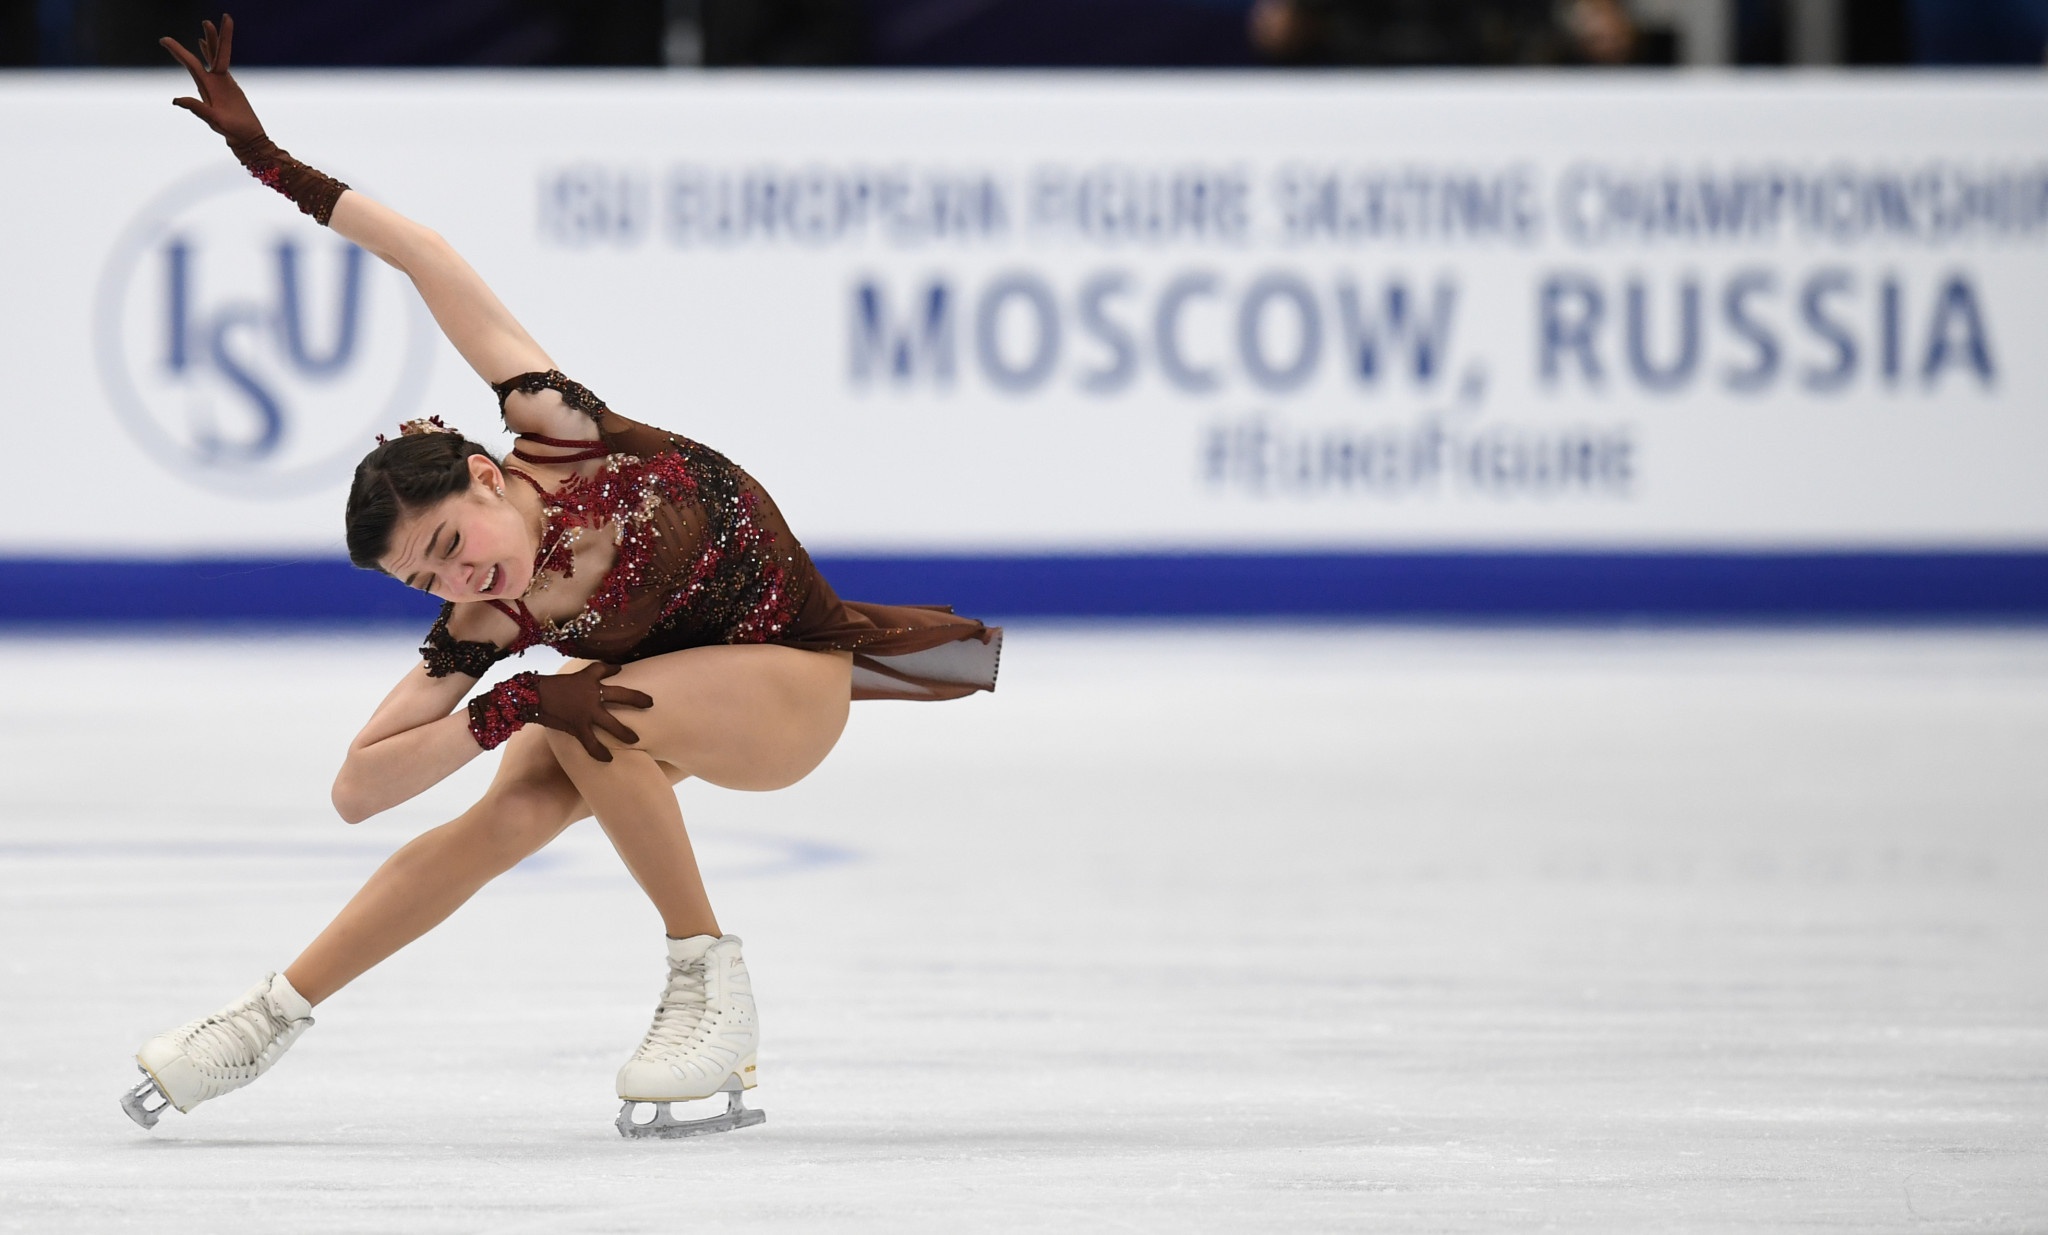 Evgenia Medvedeva is among the leading names included on the 169-strong team ©Getty Images